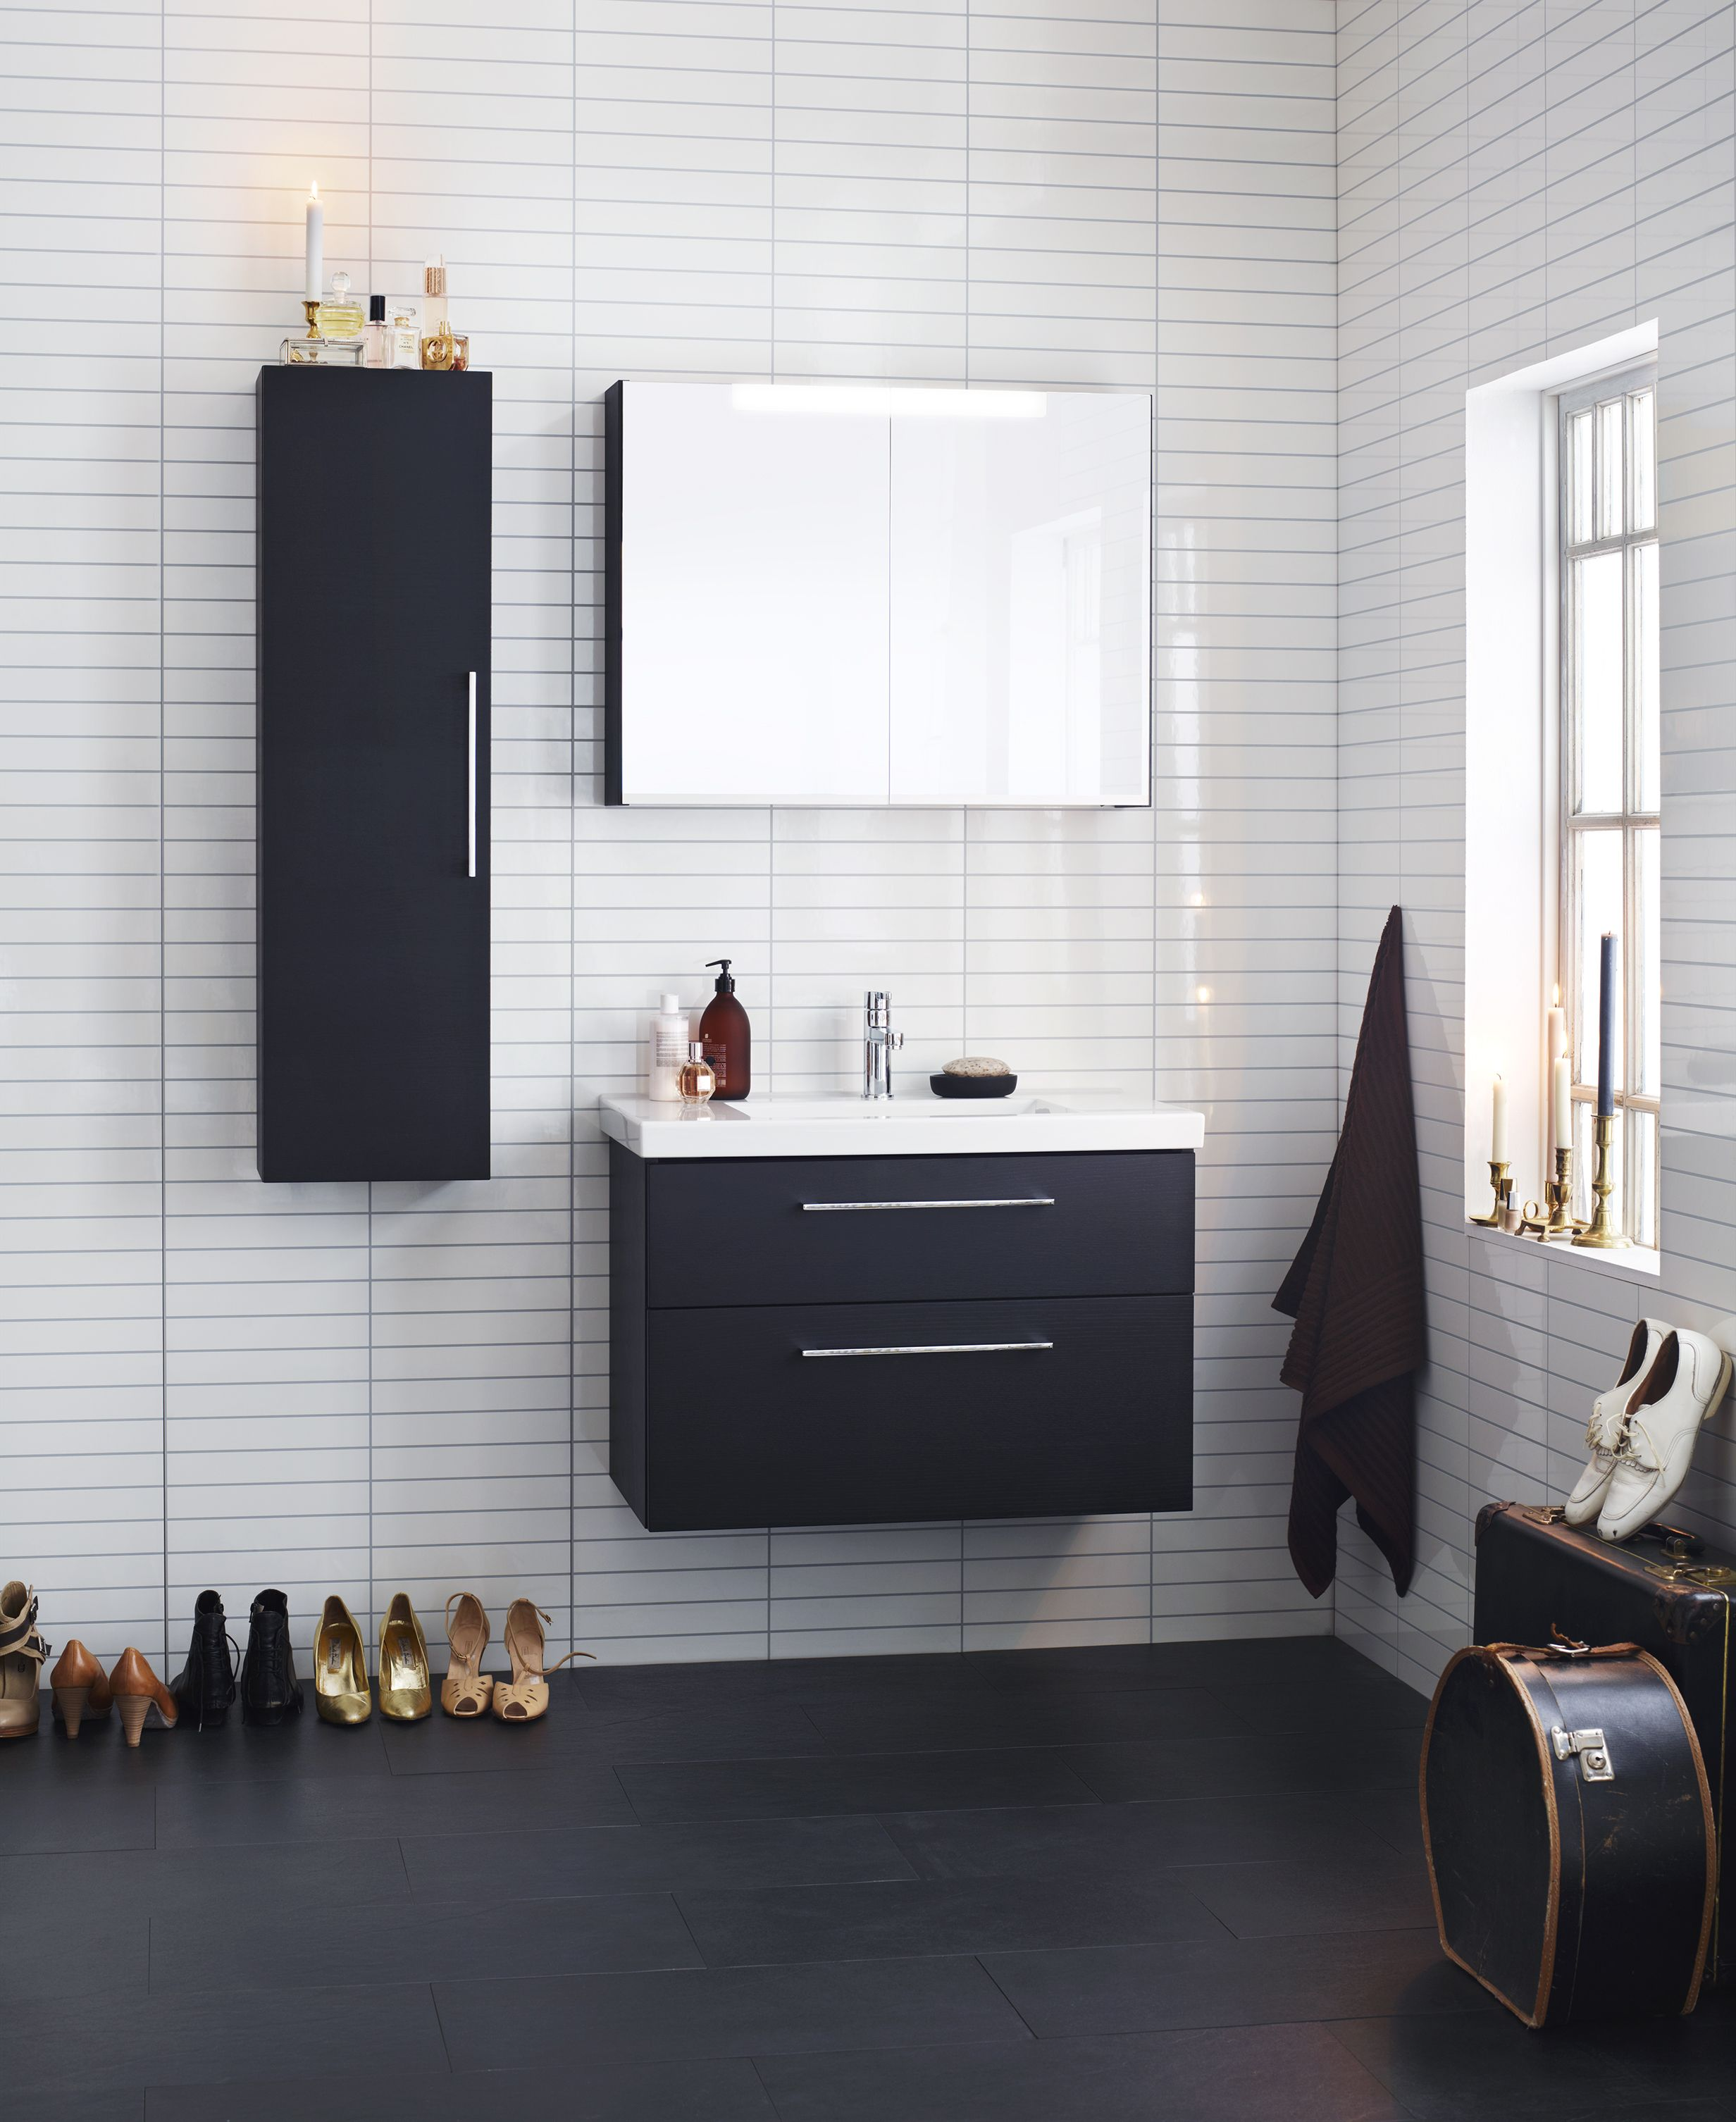 Aspen Badrum Viskan Vit Svart White Black Scandinavian Design Bathroom Furniture